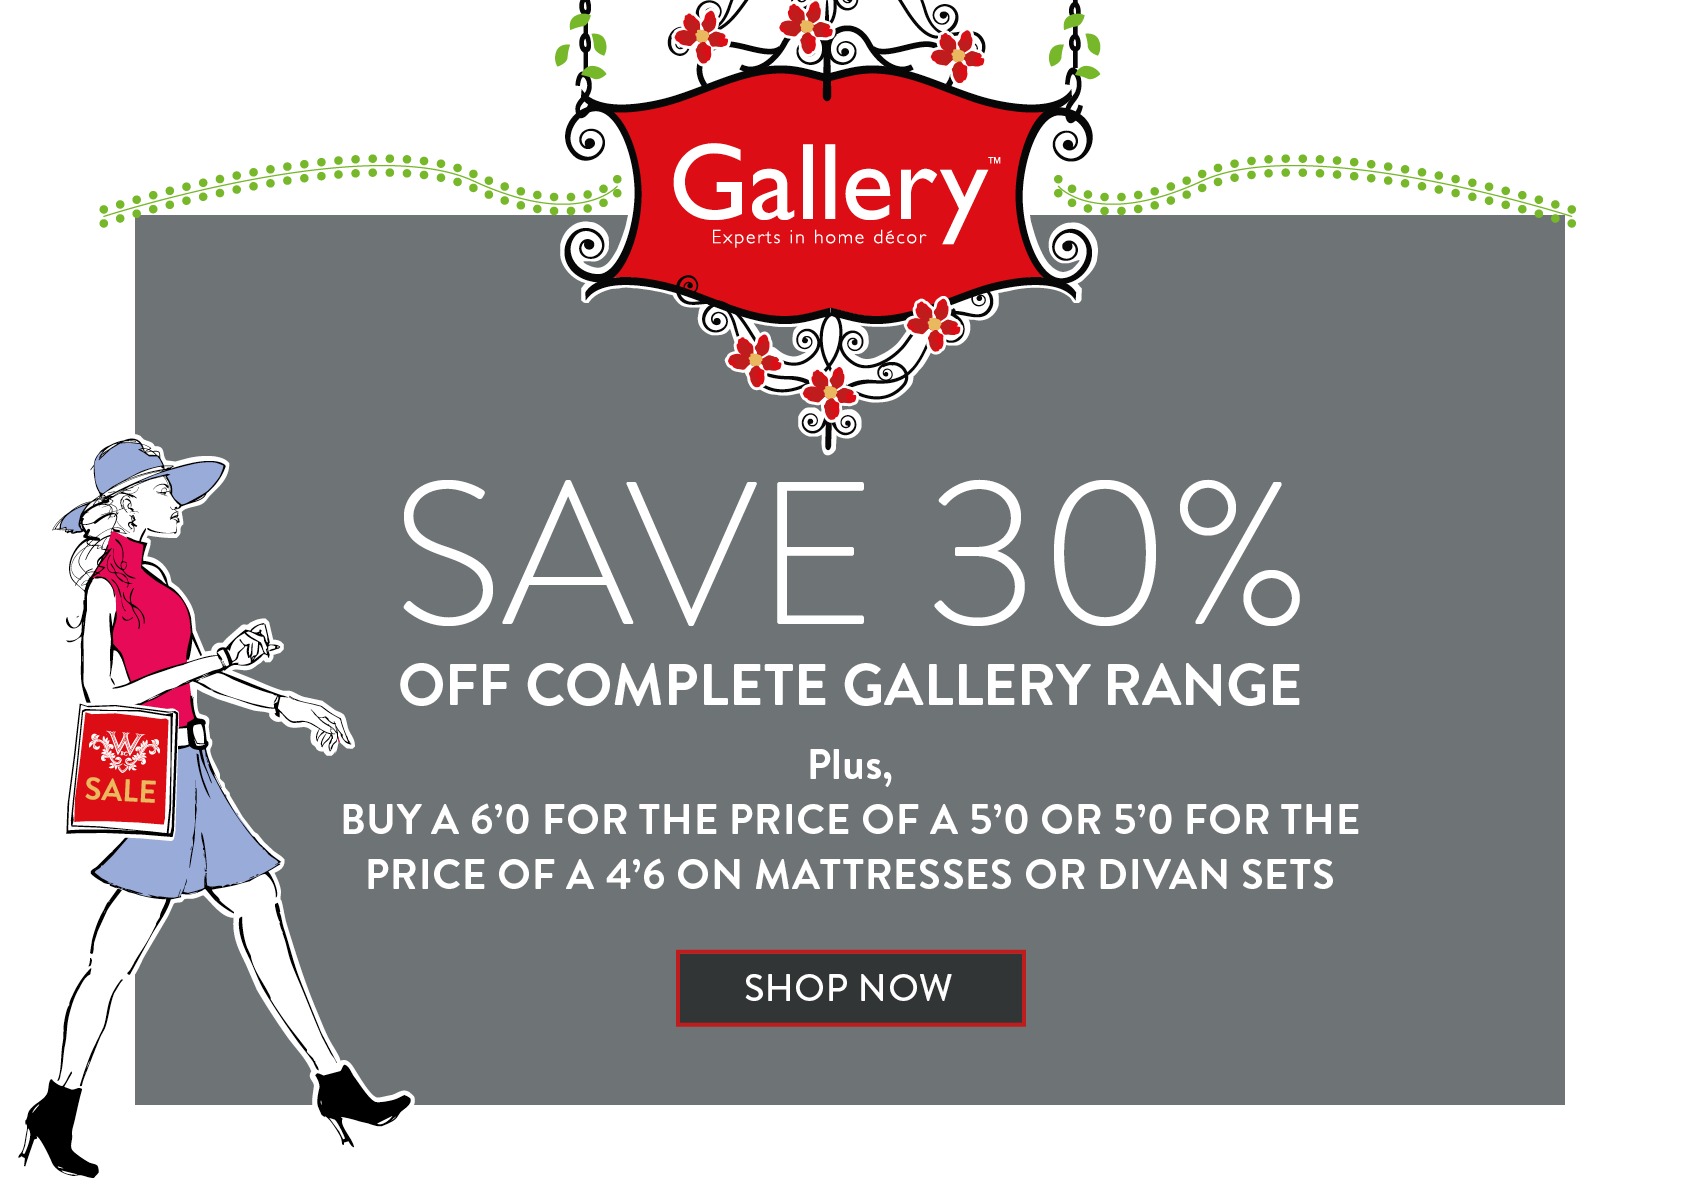 SAVE 30% OFF COMPLETE GALLERY RANGE Plus, BUY A 6'0 FOR THE PRICE OF A 5'0 OR 5'0 FOR THE PRICE OF A 4'6 ON MATTRESSES OR DIVAN SETS